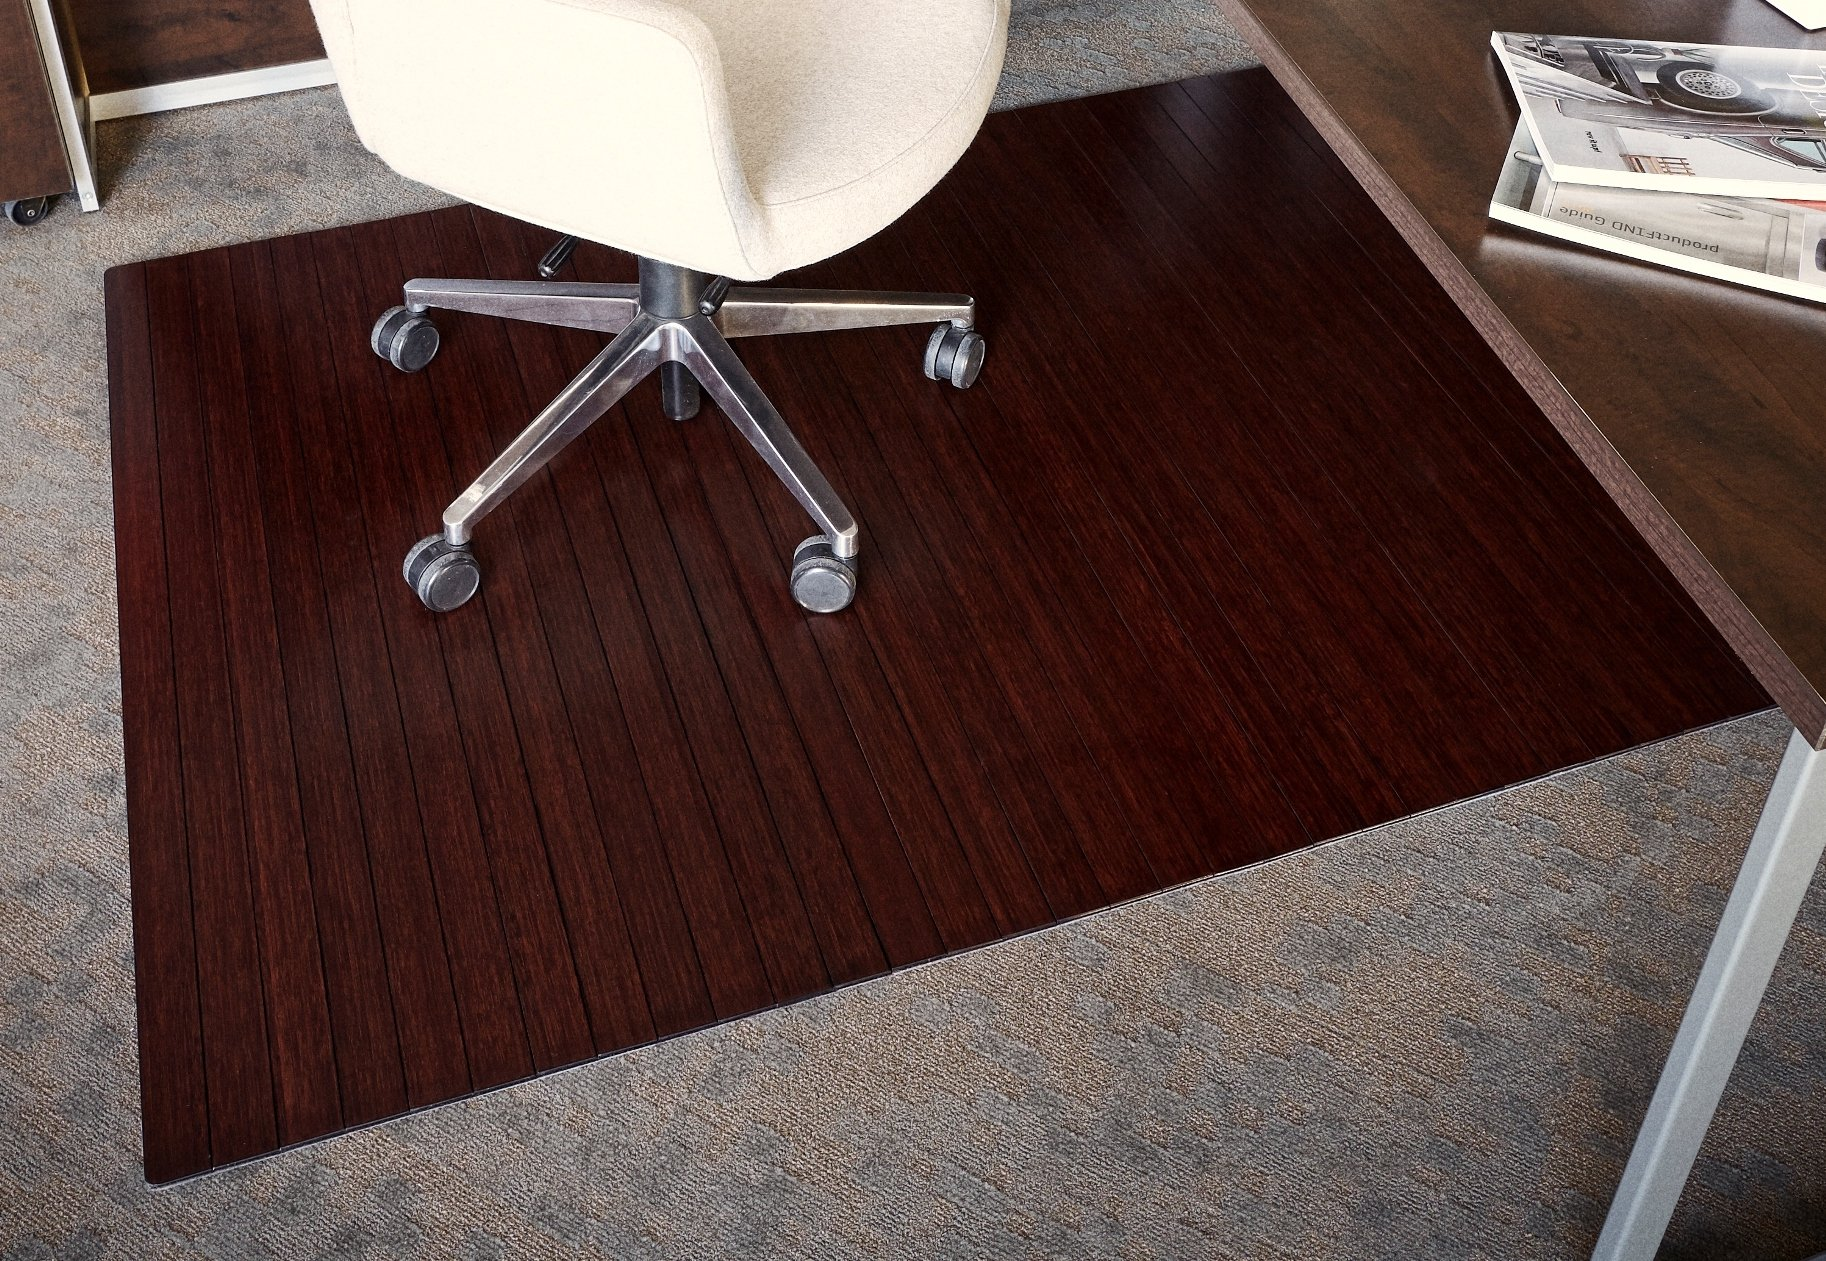 Anji Mountain Bamboo Roll-Up Chair Mat Without Lip, Dark Cherry, 48 x 72'', 5mm Thick by Anji Mountain